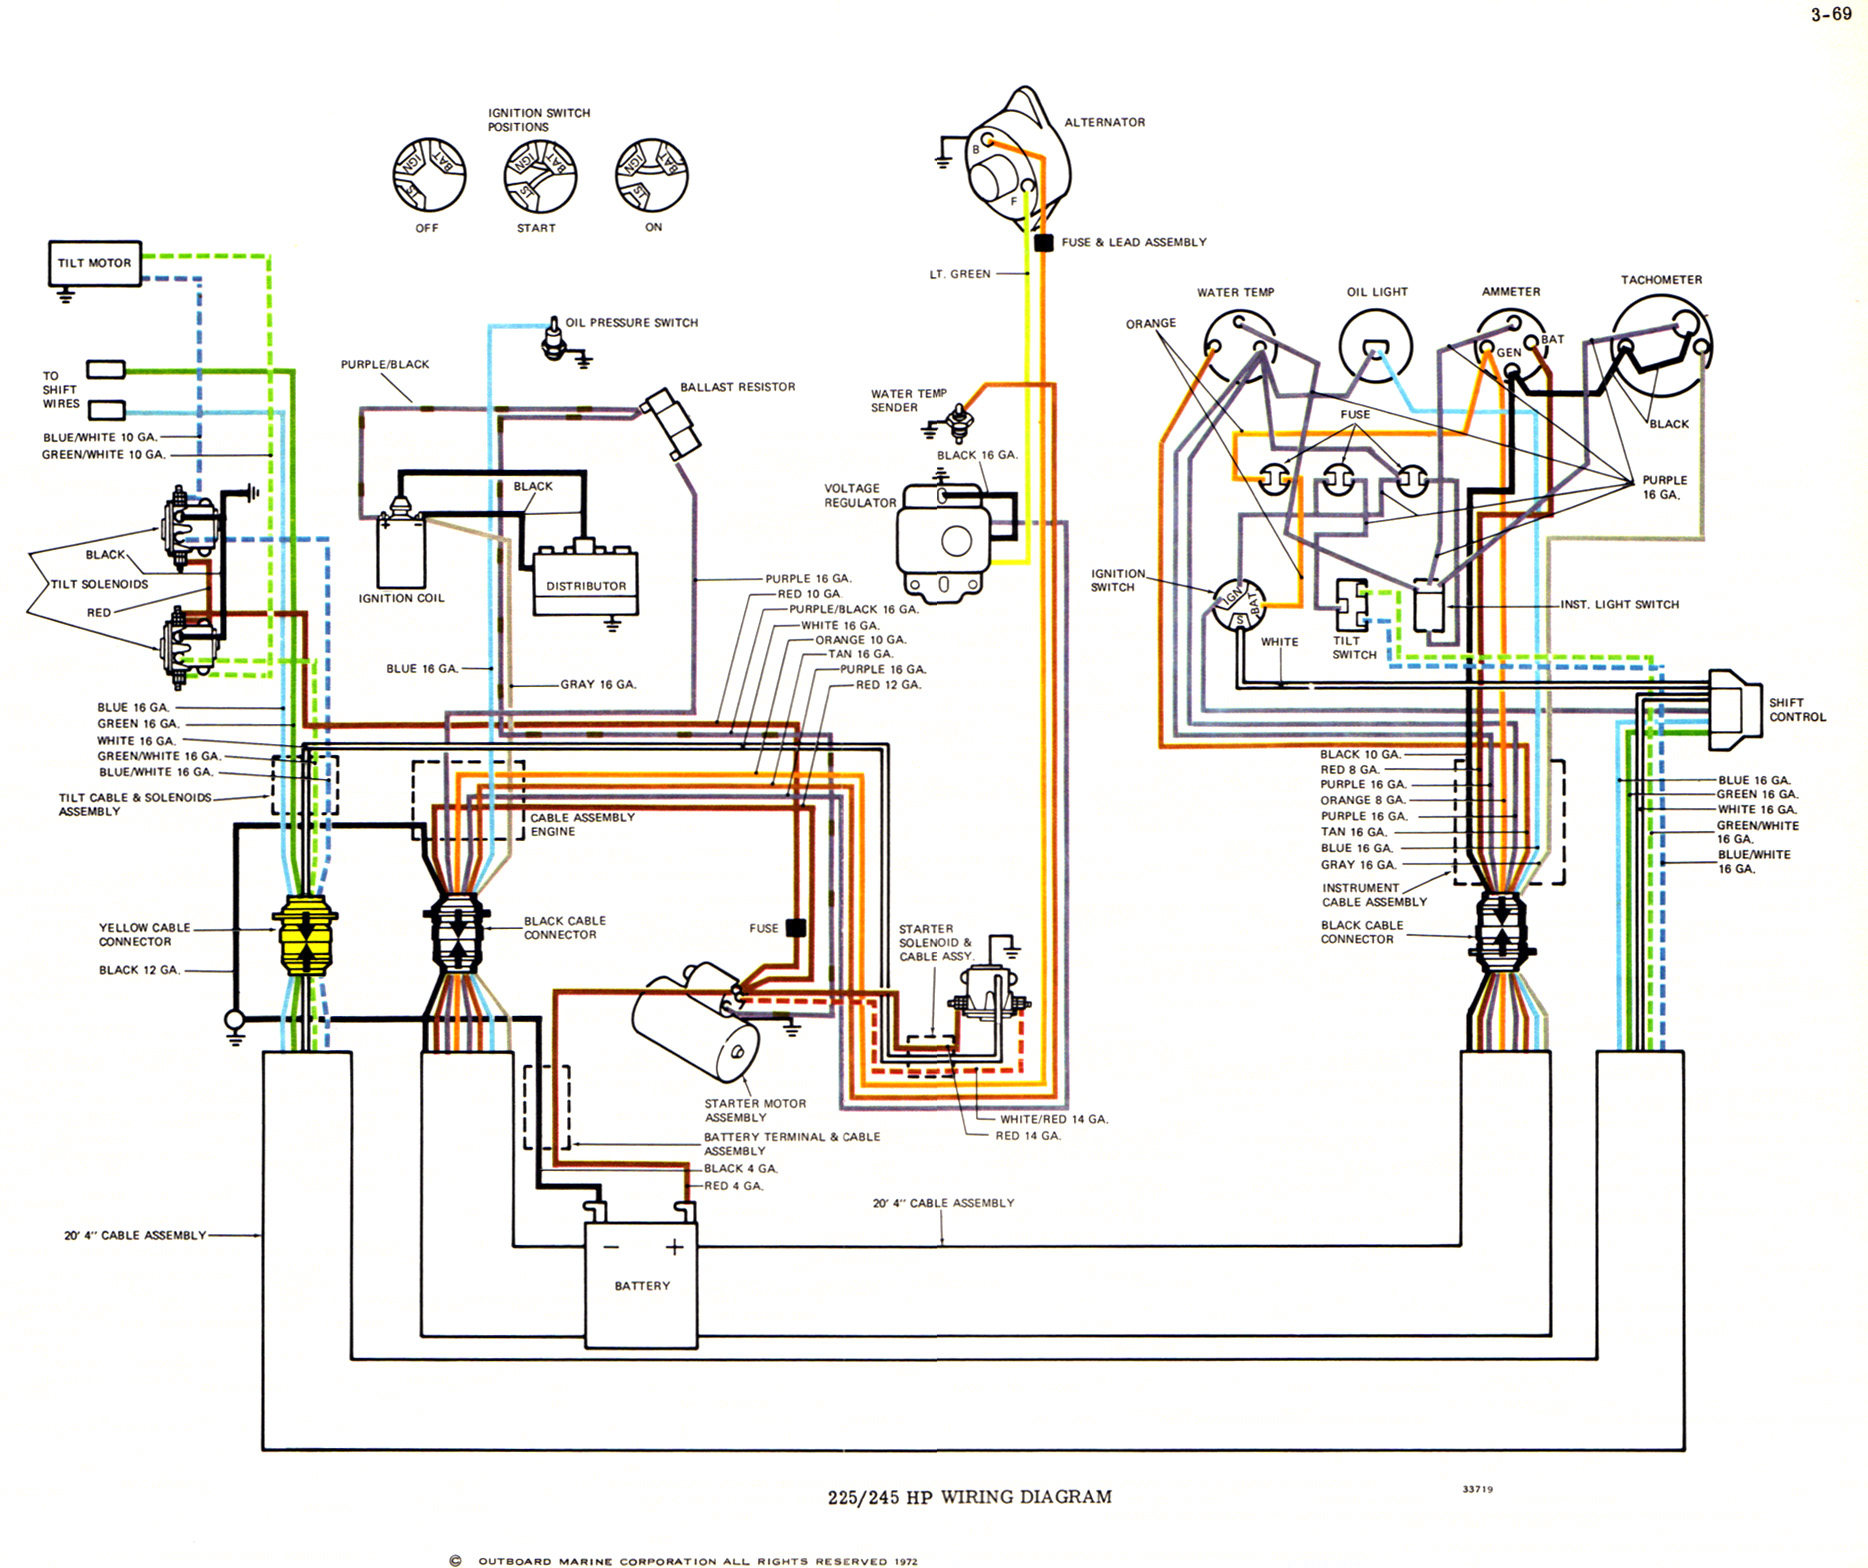 73_OMC_V8_all_big yamaha outboard motor wiring diagrams the wiring diagram Suzuki DT40 Outboard Parts Diagrams at n-0.co